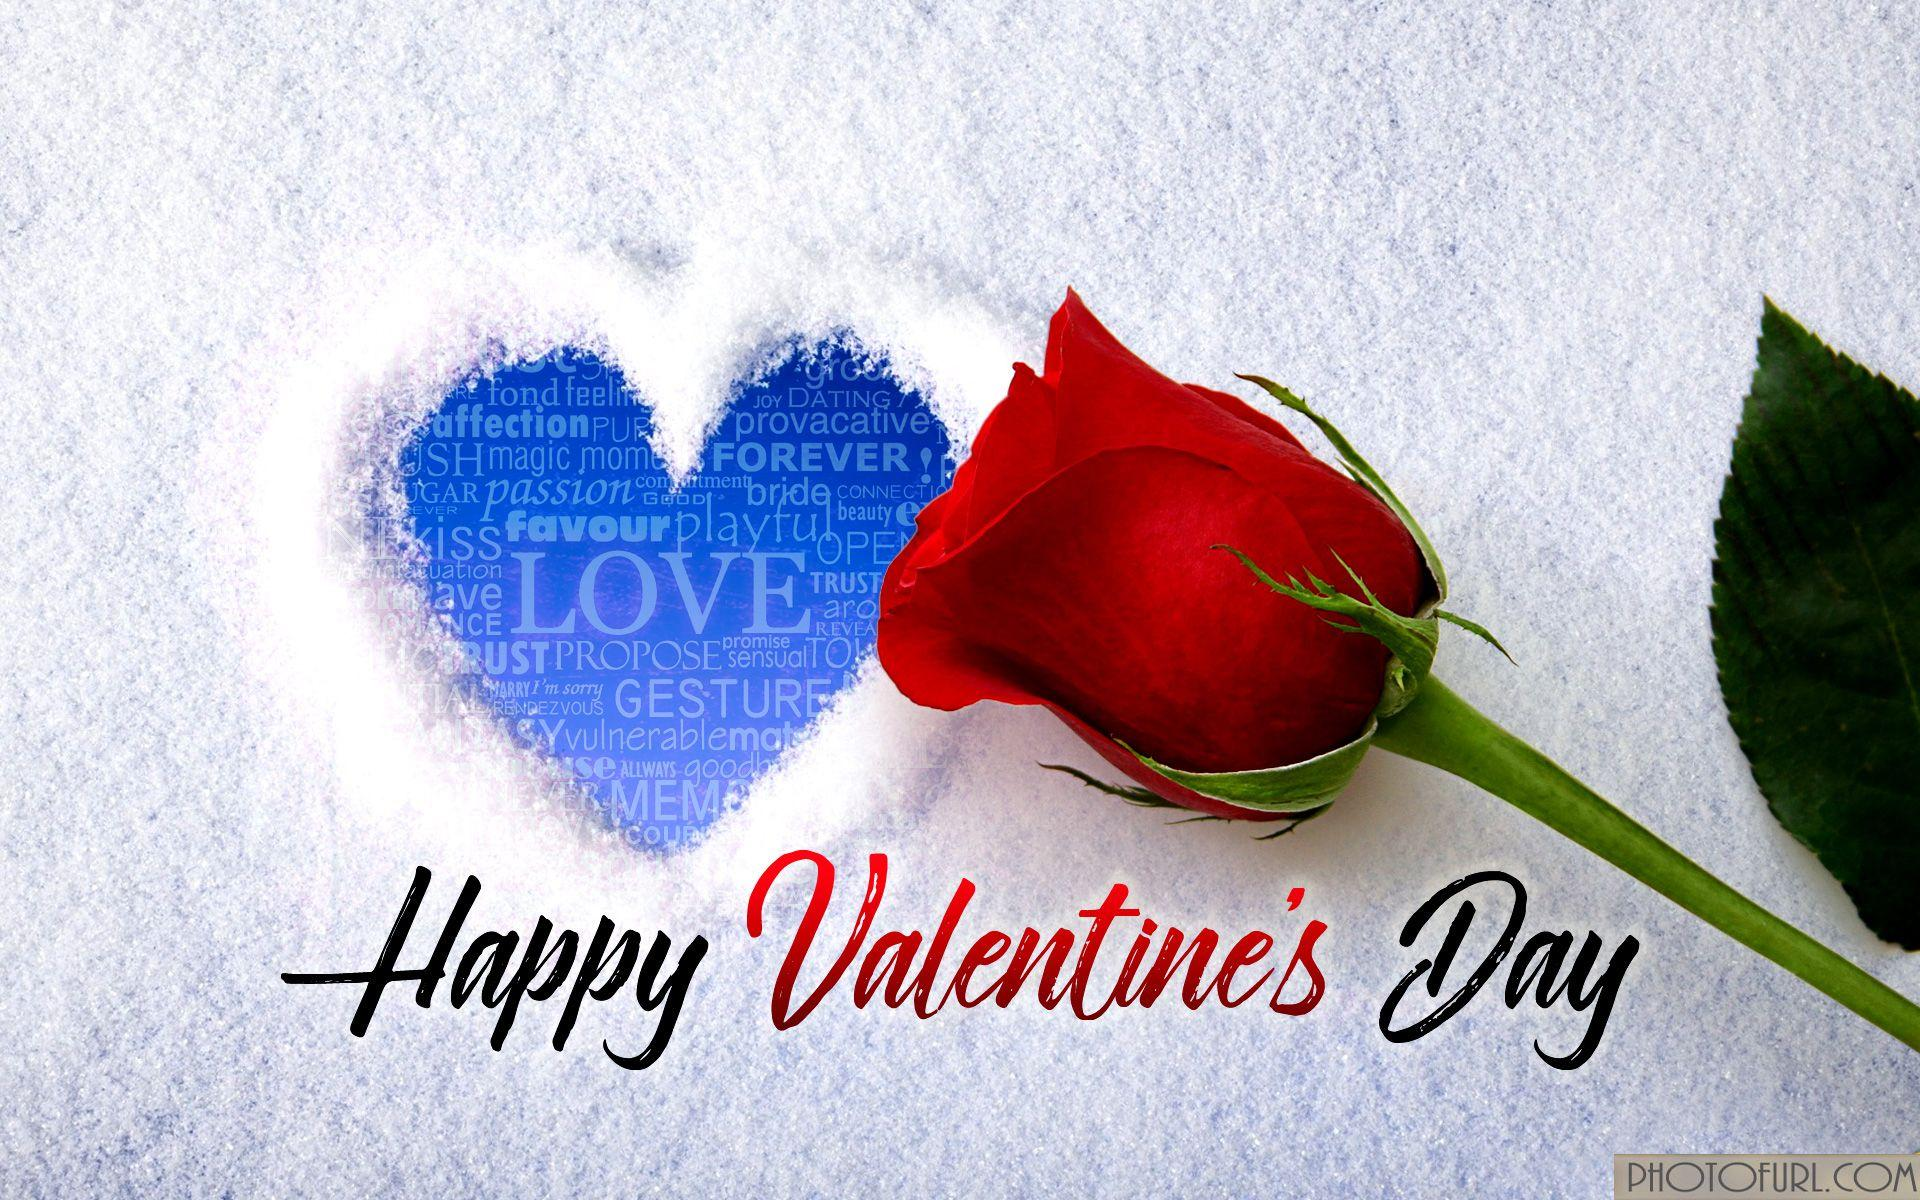 Happy Valentine's Day 2019 Love Wallpapers Free Download